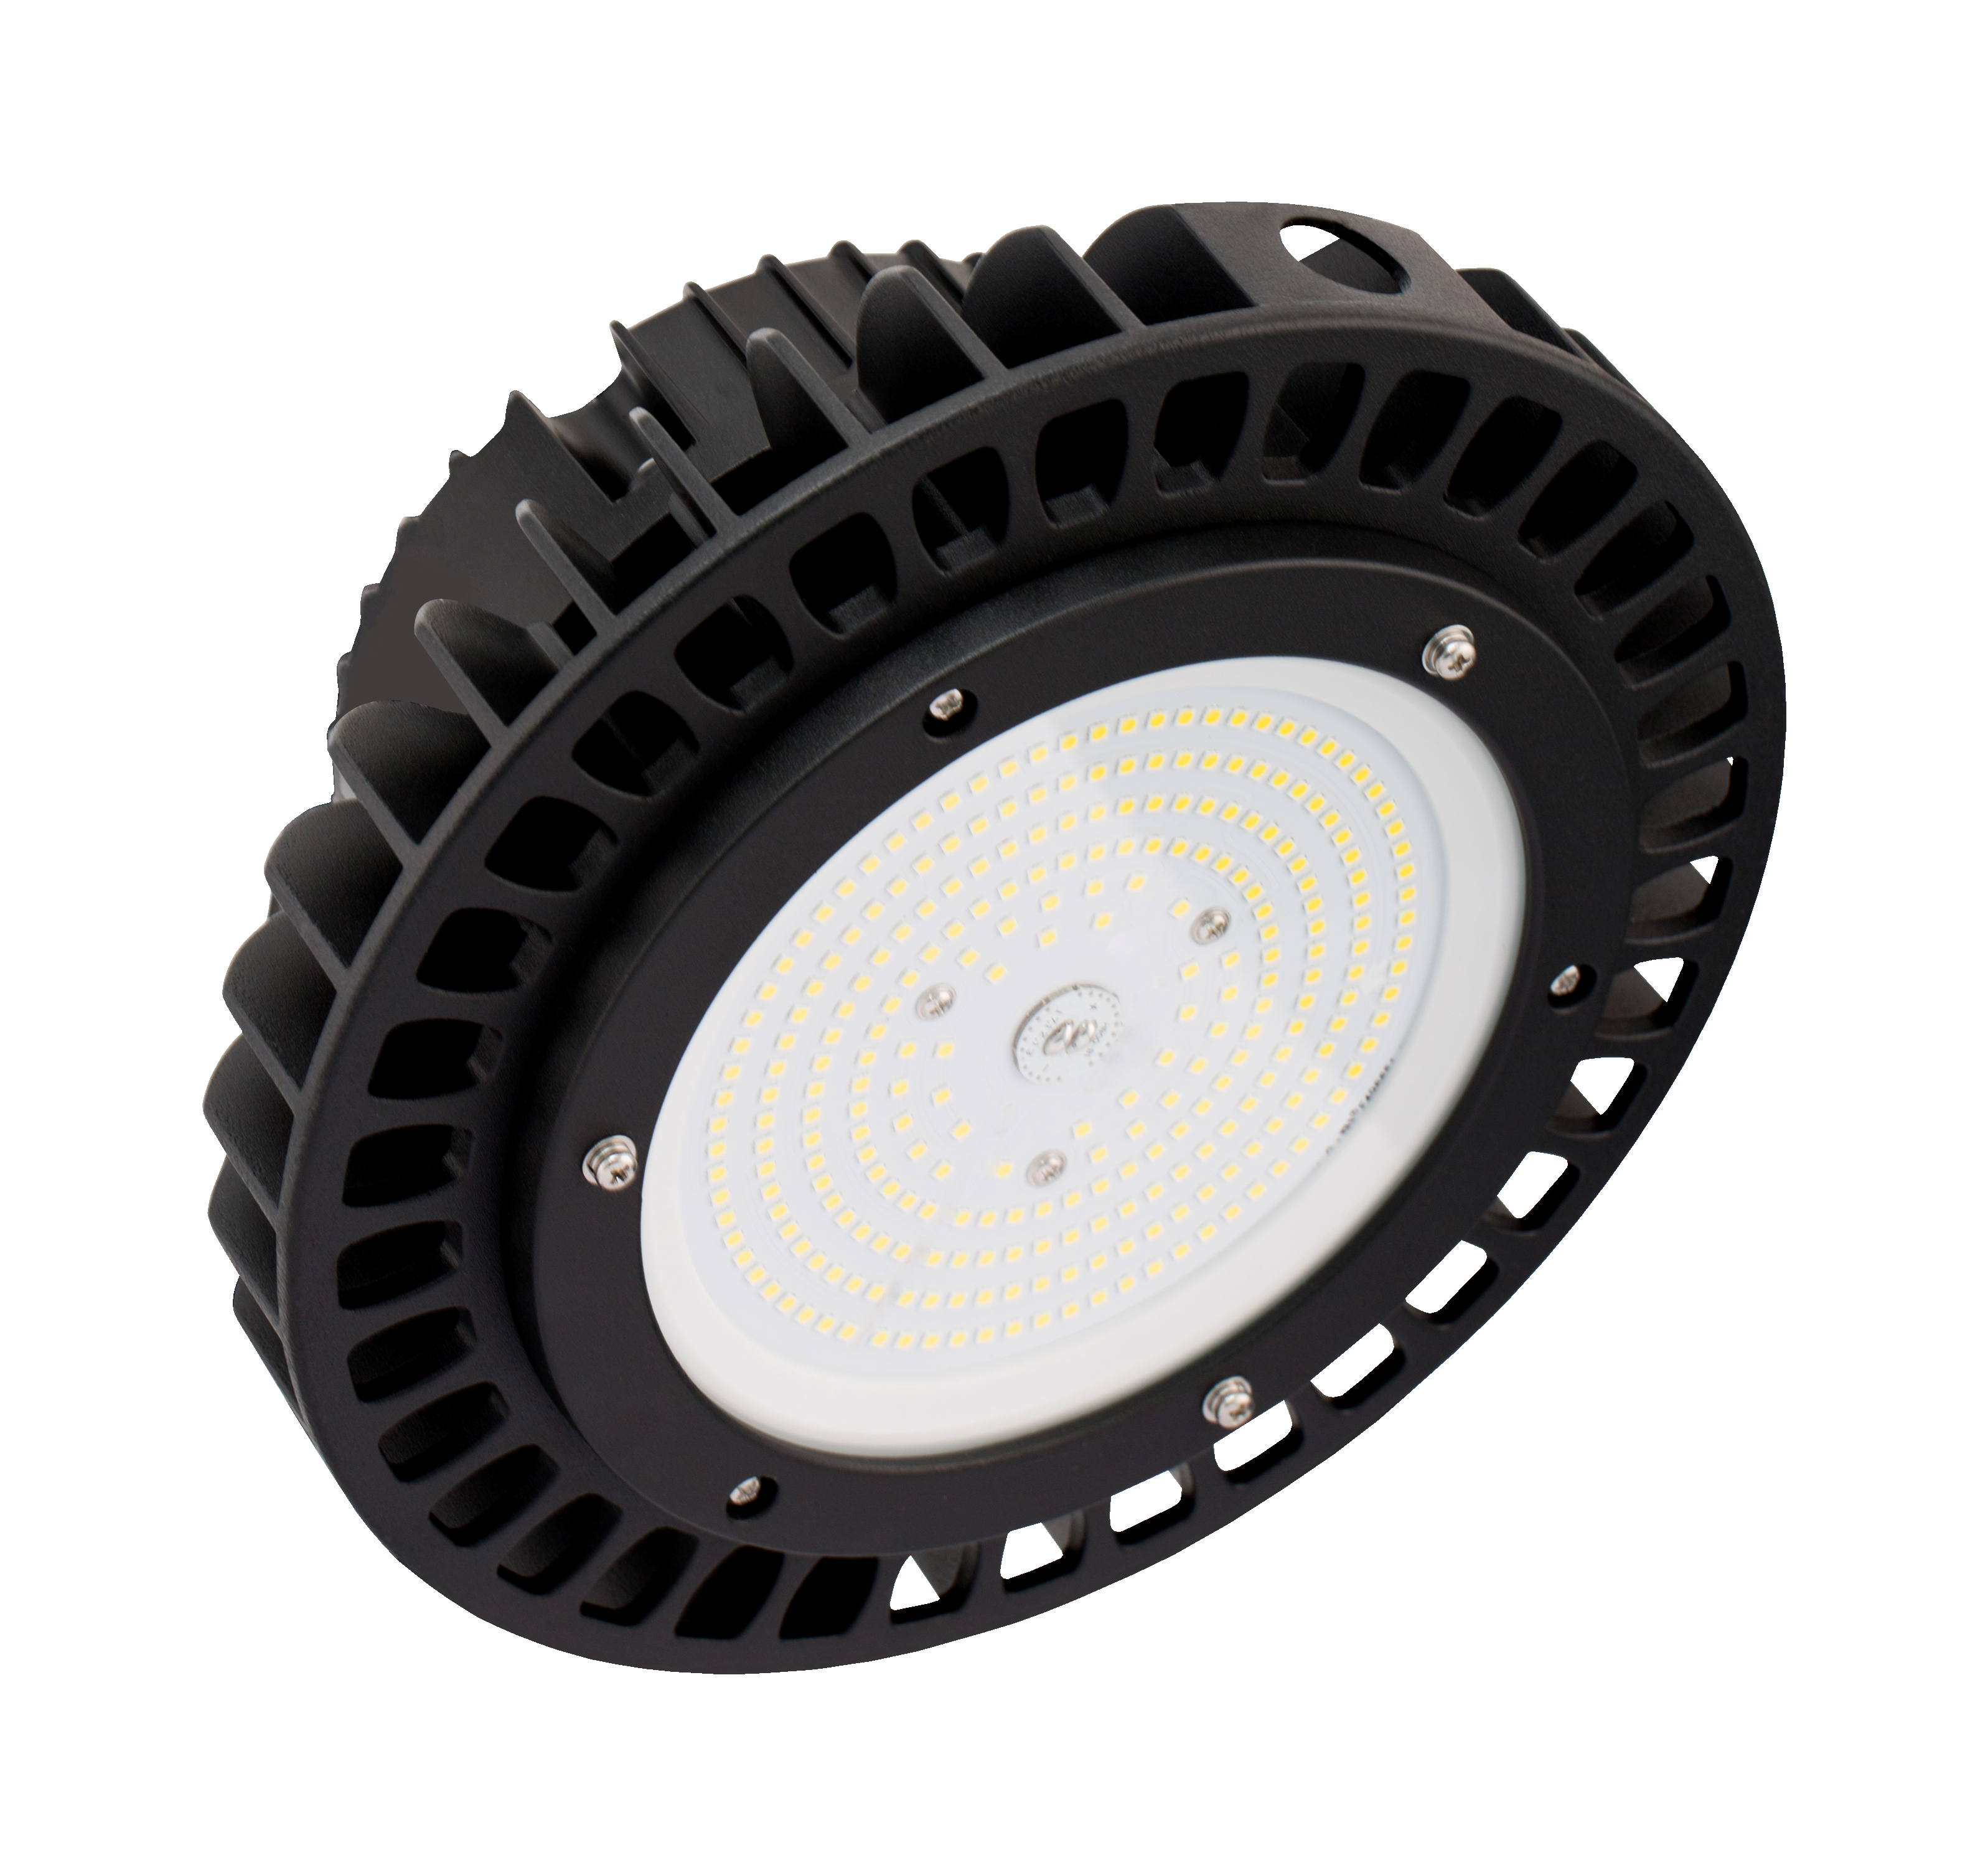 IN HOUSE LED - GAMELLE INDUSTRIELLE LED 100W NOIR 4000K